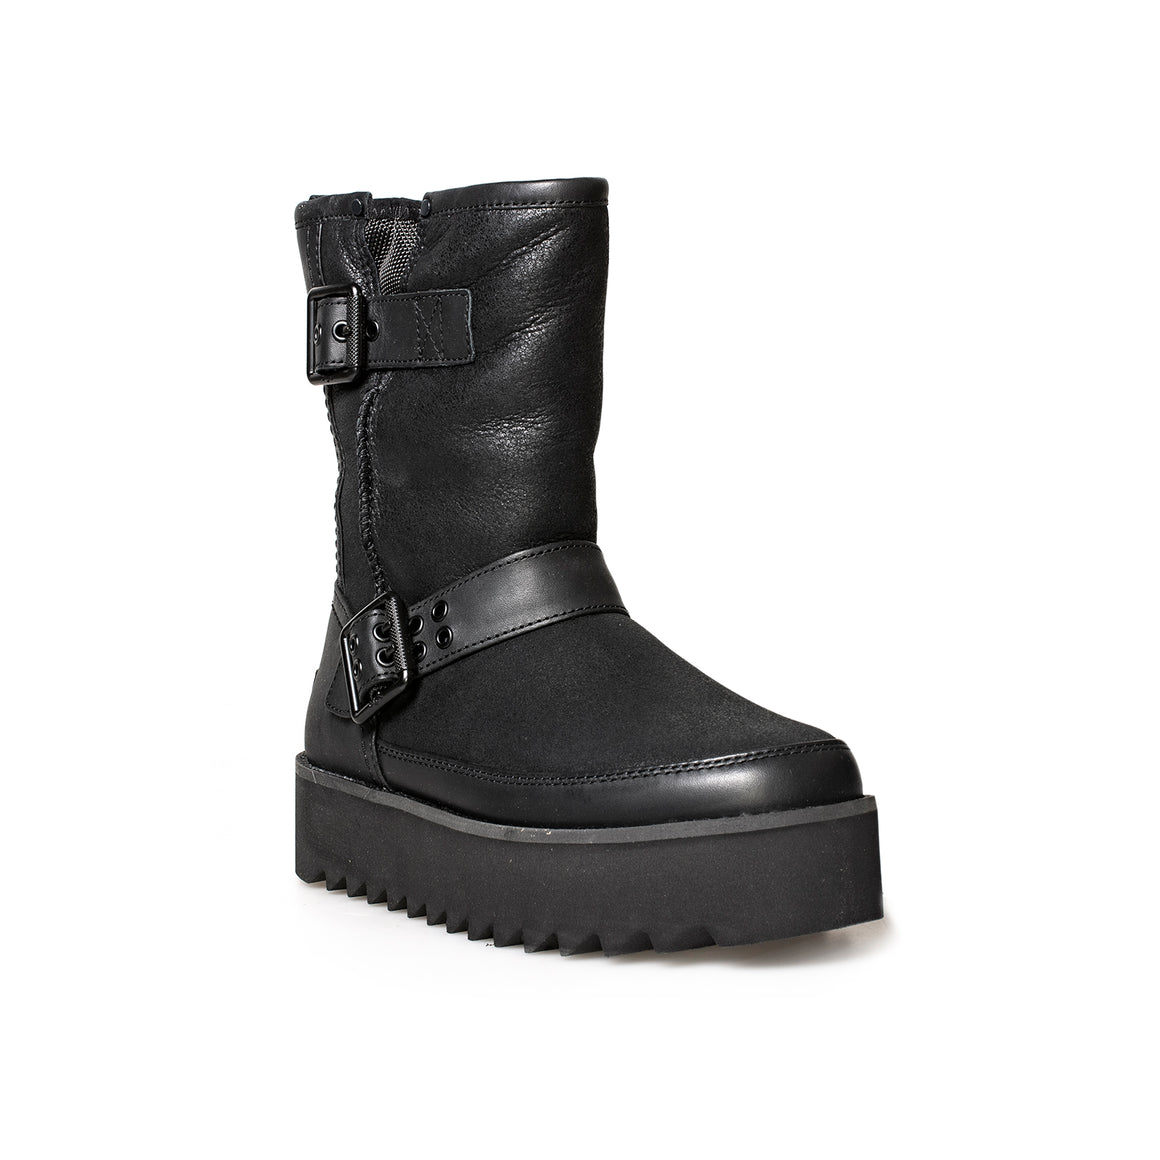 UGG Classic Rebel Biker Short Black Boots - Women's